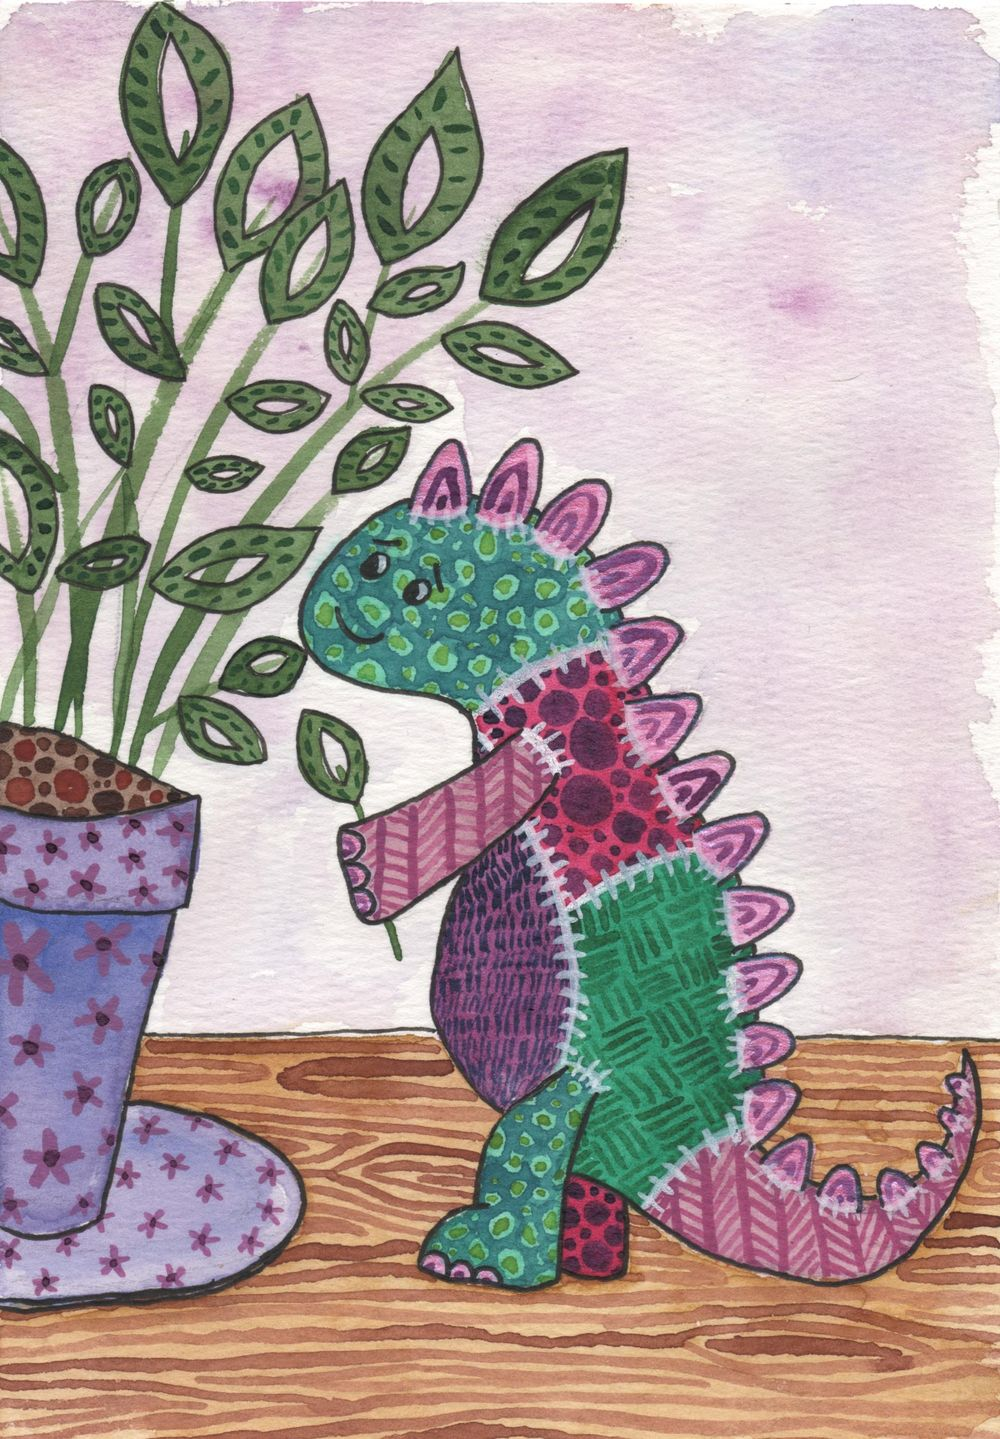 Dinosaur Plushie Textures - image 3 - student project